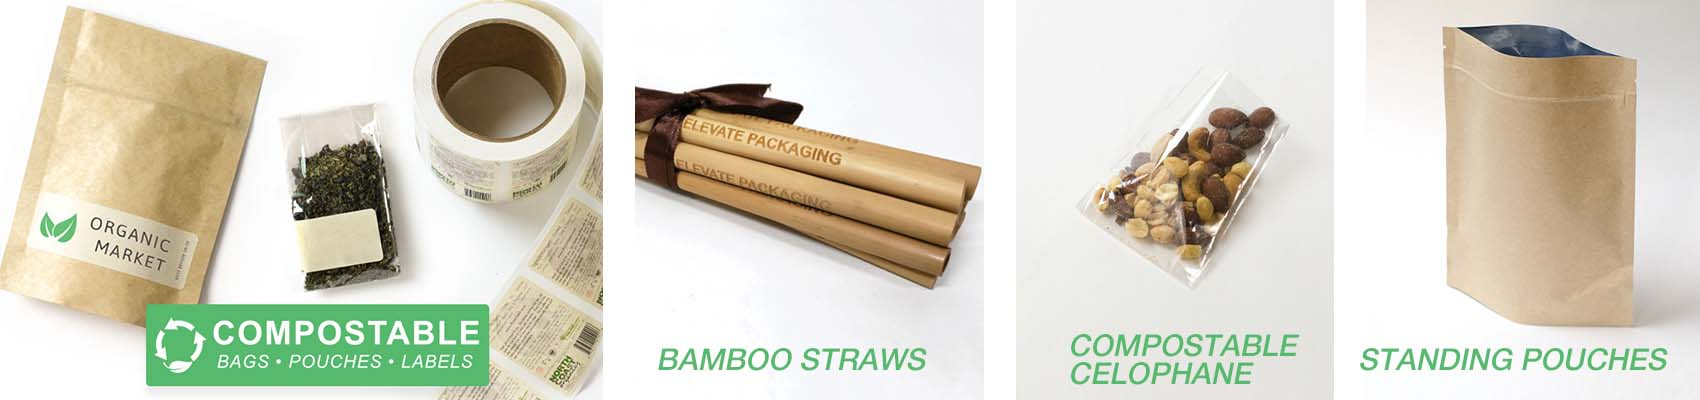 Compostable pouches, Cellophane, stickers, packaging and bamboo straws